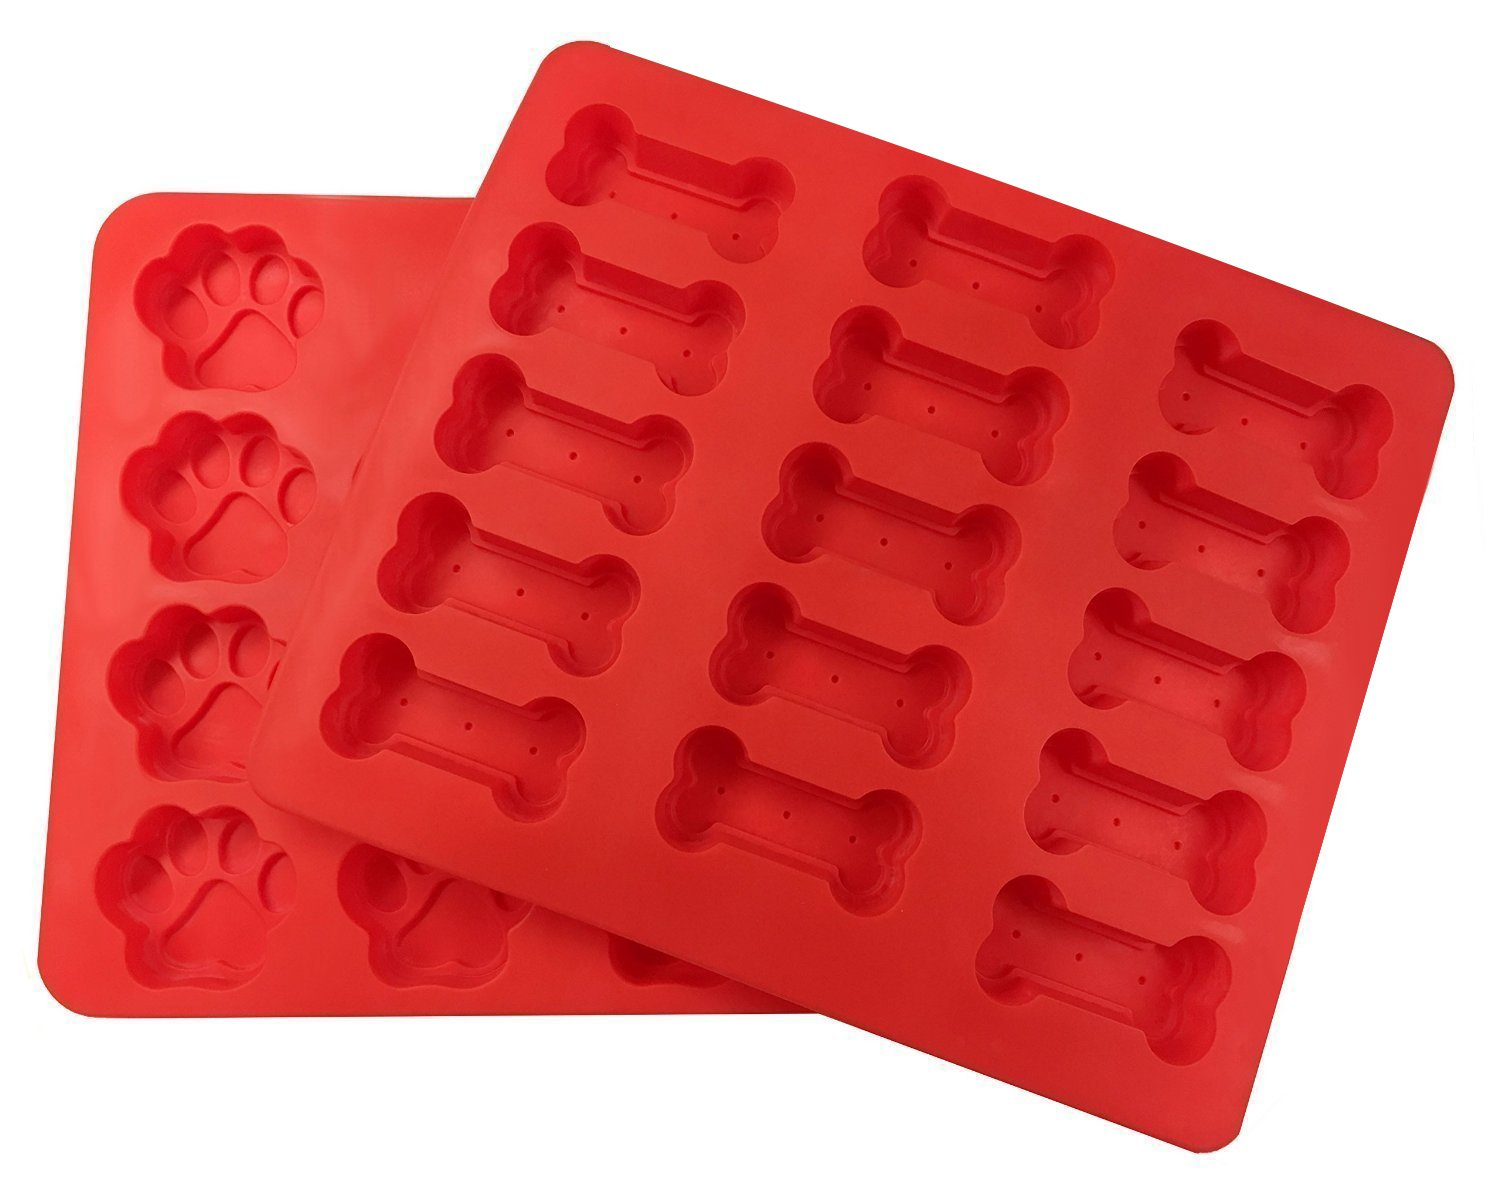 wellhouse Bake Bone and Paw Silicone Cake Mold - 15 Cavities 3 - Food Grade Silicone Non-Stick WH